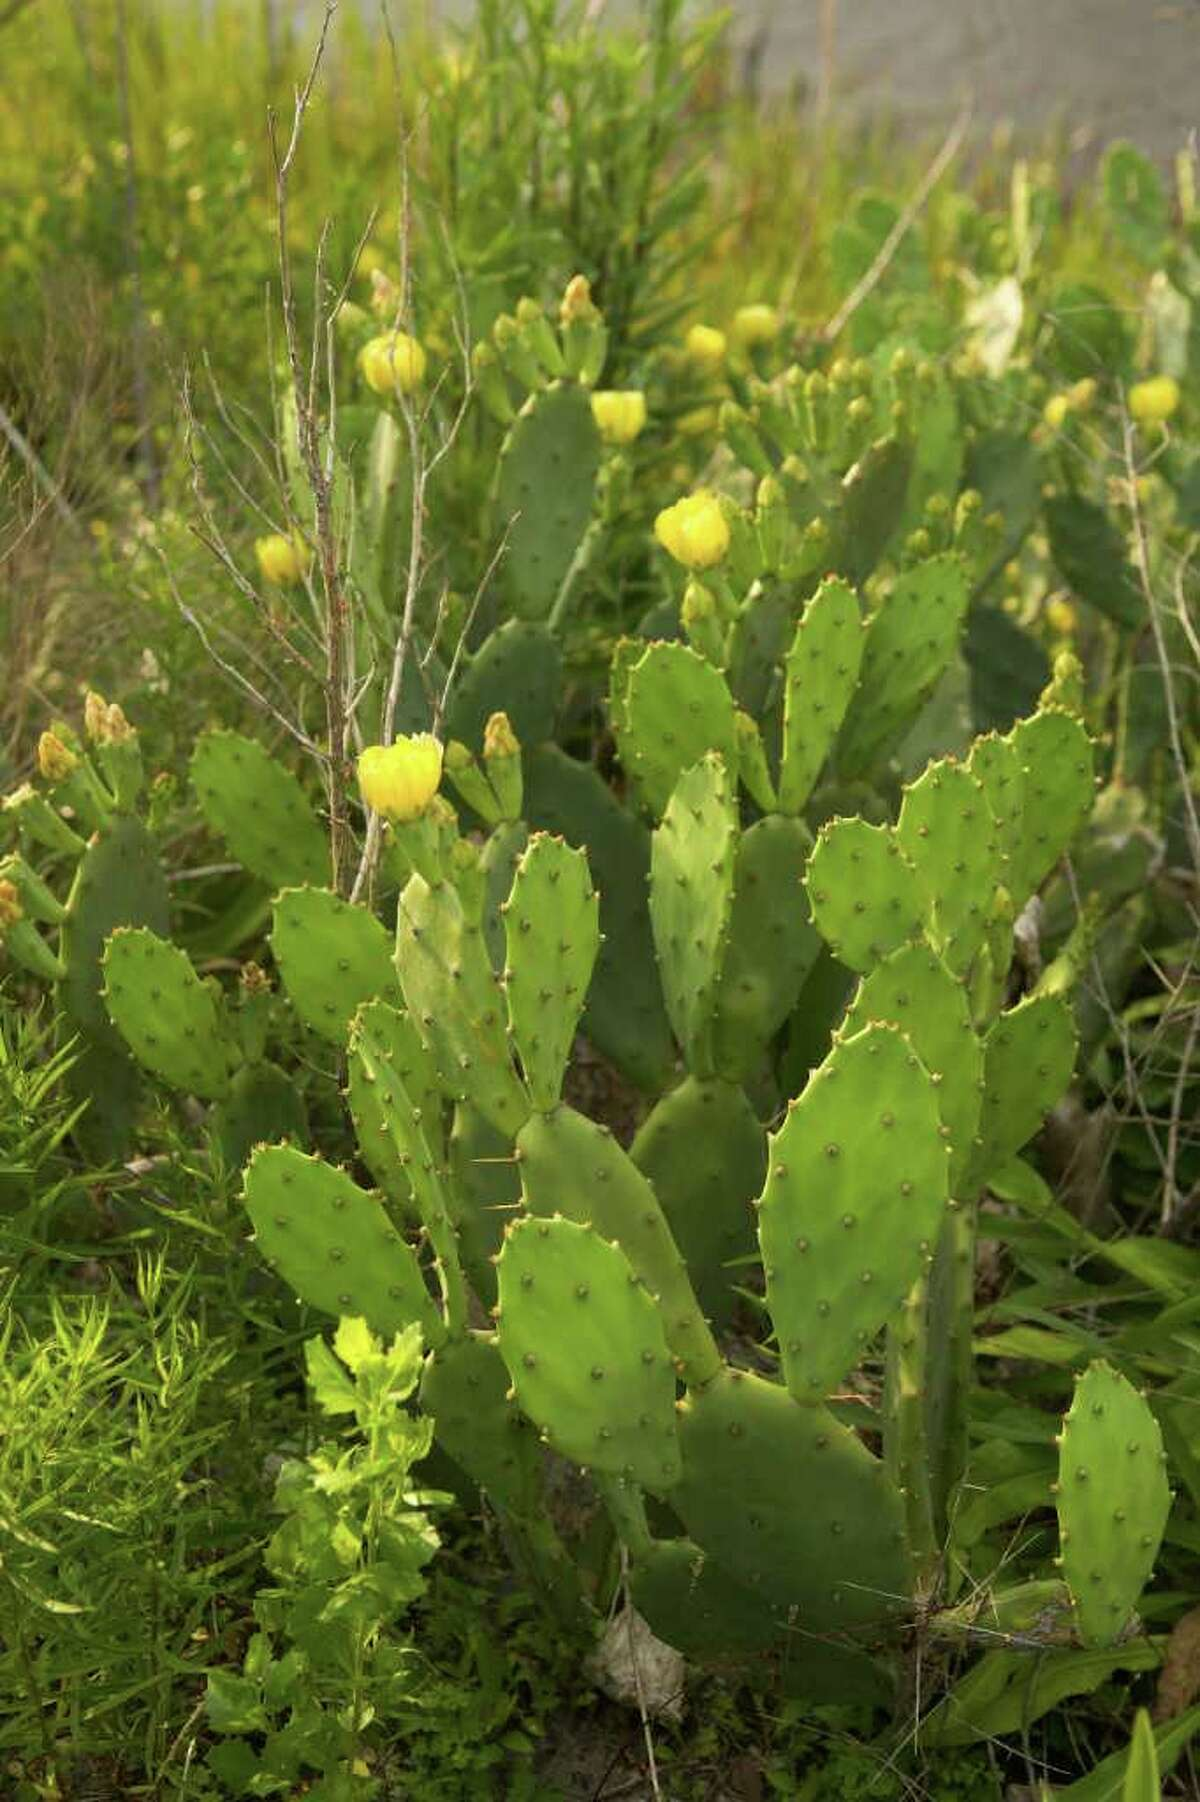 Prickly pear cactus, Opuntia spp., grows throughout the United States, with the greatest diversity in the desert Southwest and Mexico. These species are regarded as extremely important plants, especially in arid and semiarid regions where few plants can be grown, because of their ecological, agricultural, industrial, and cultural value. (Courtesy of USDA)